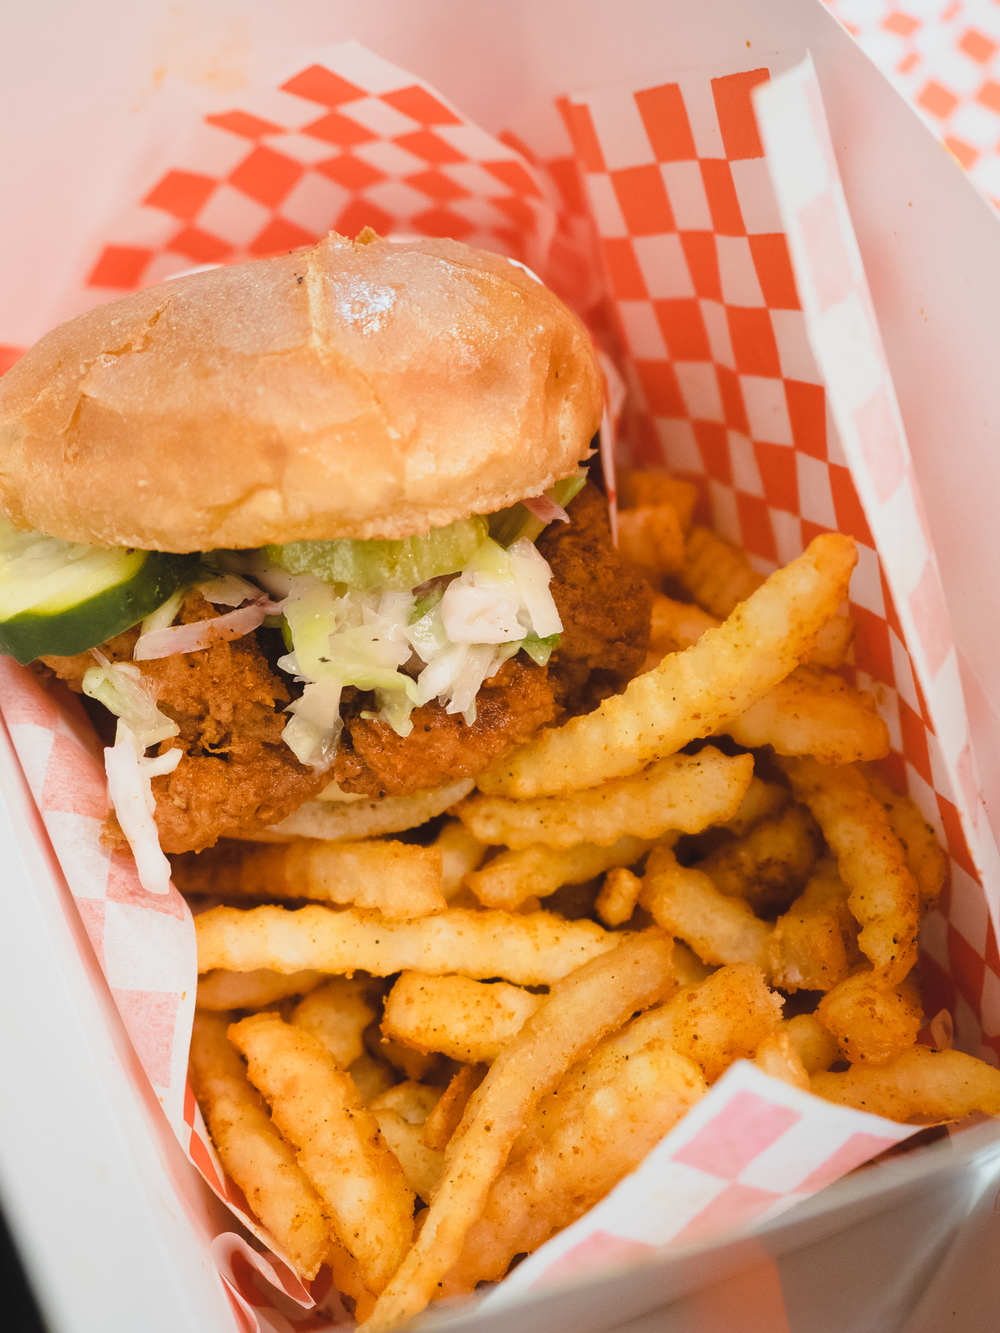 hot chicken sandwich with fries.